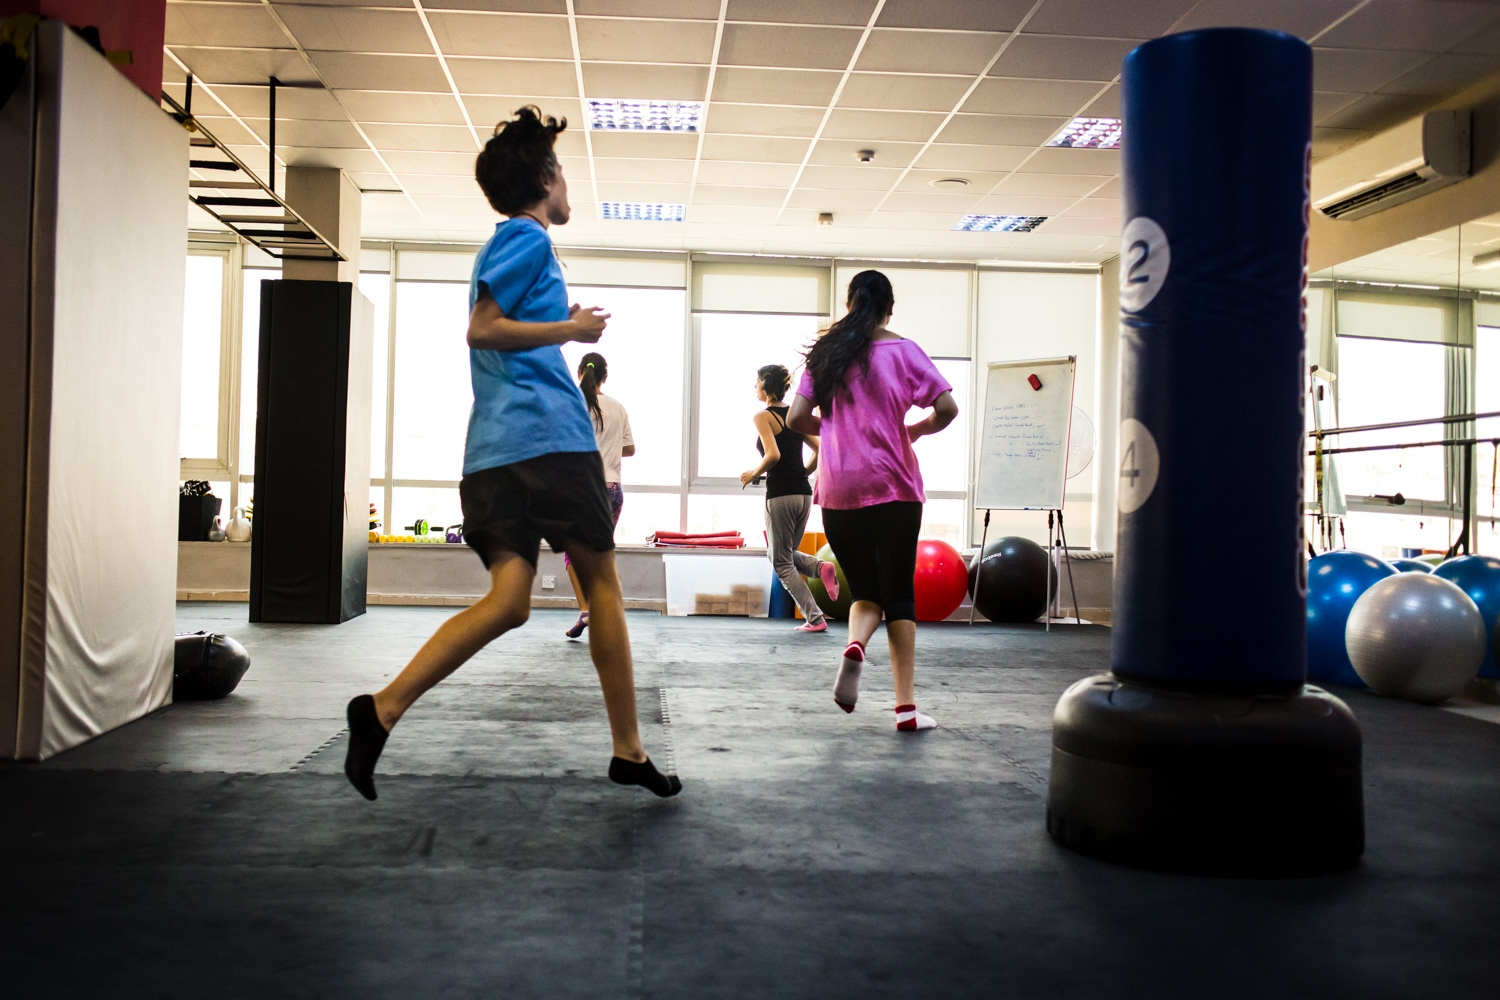 Girls run laps around the studio to warm up for the next lesson in a self defense course at She Fighter in Amman, Jordan, on August 21, 2015. The She Fighter studio was founded by Lina Khalifeh, and offers self defense classes to young women to protect against harrassment.